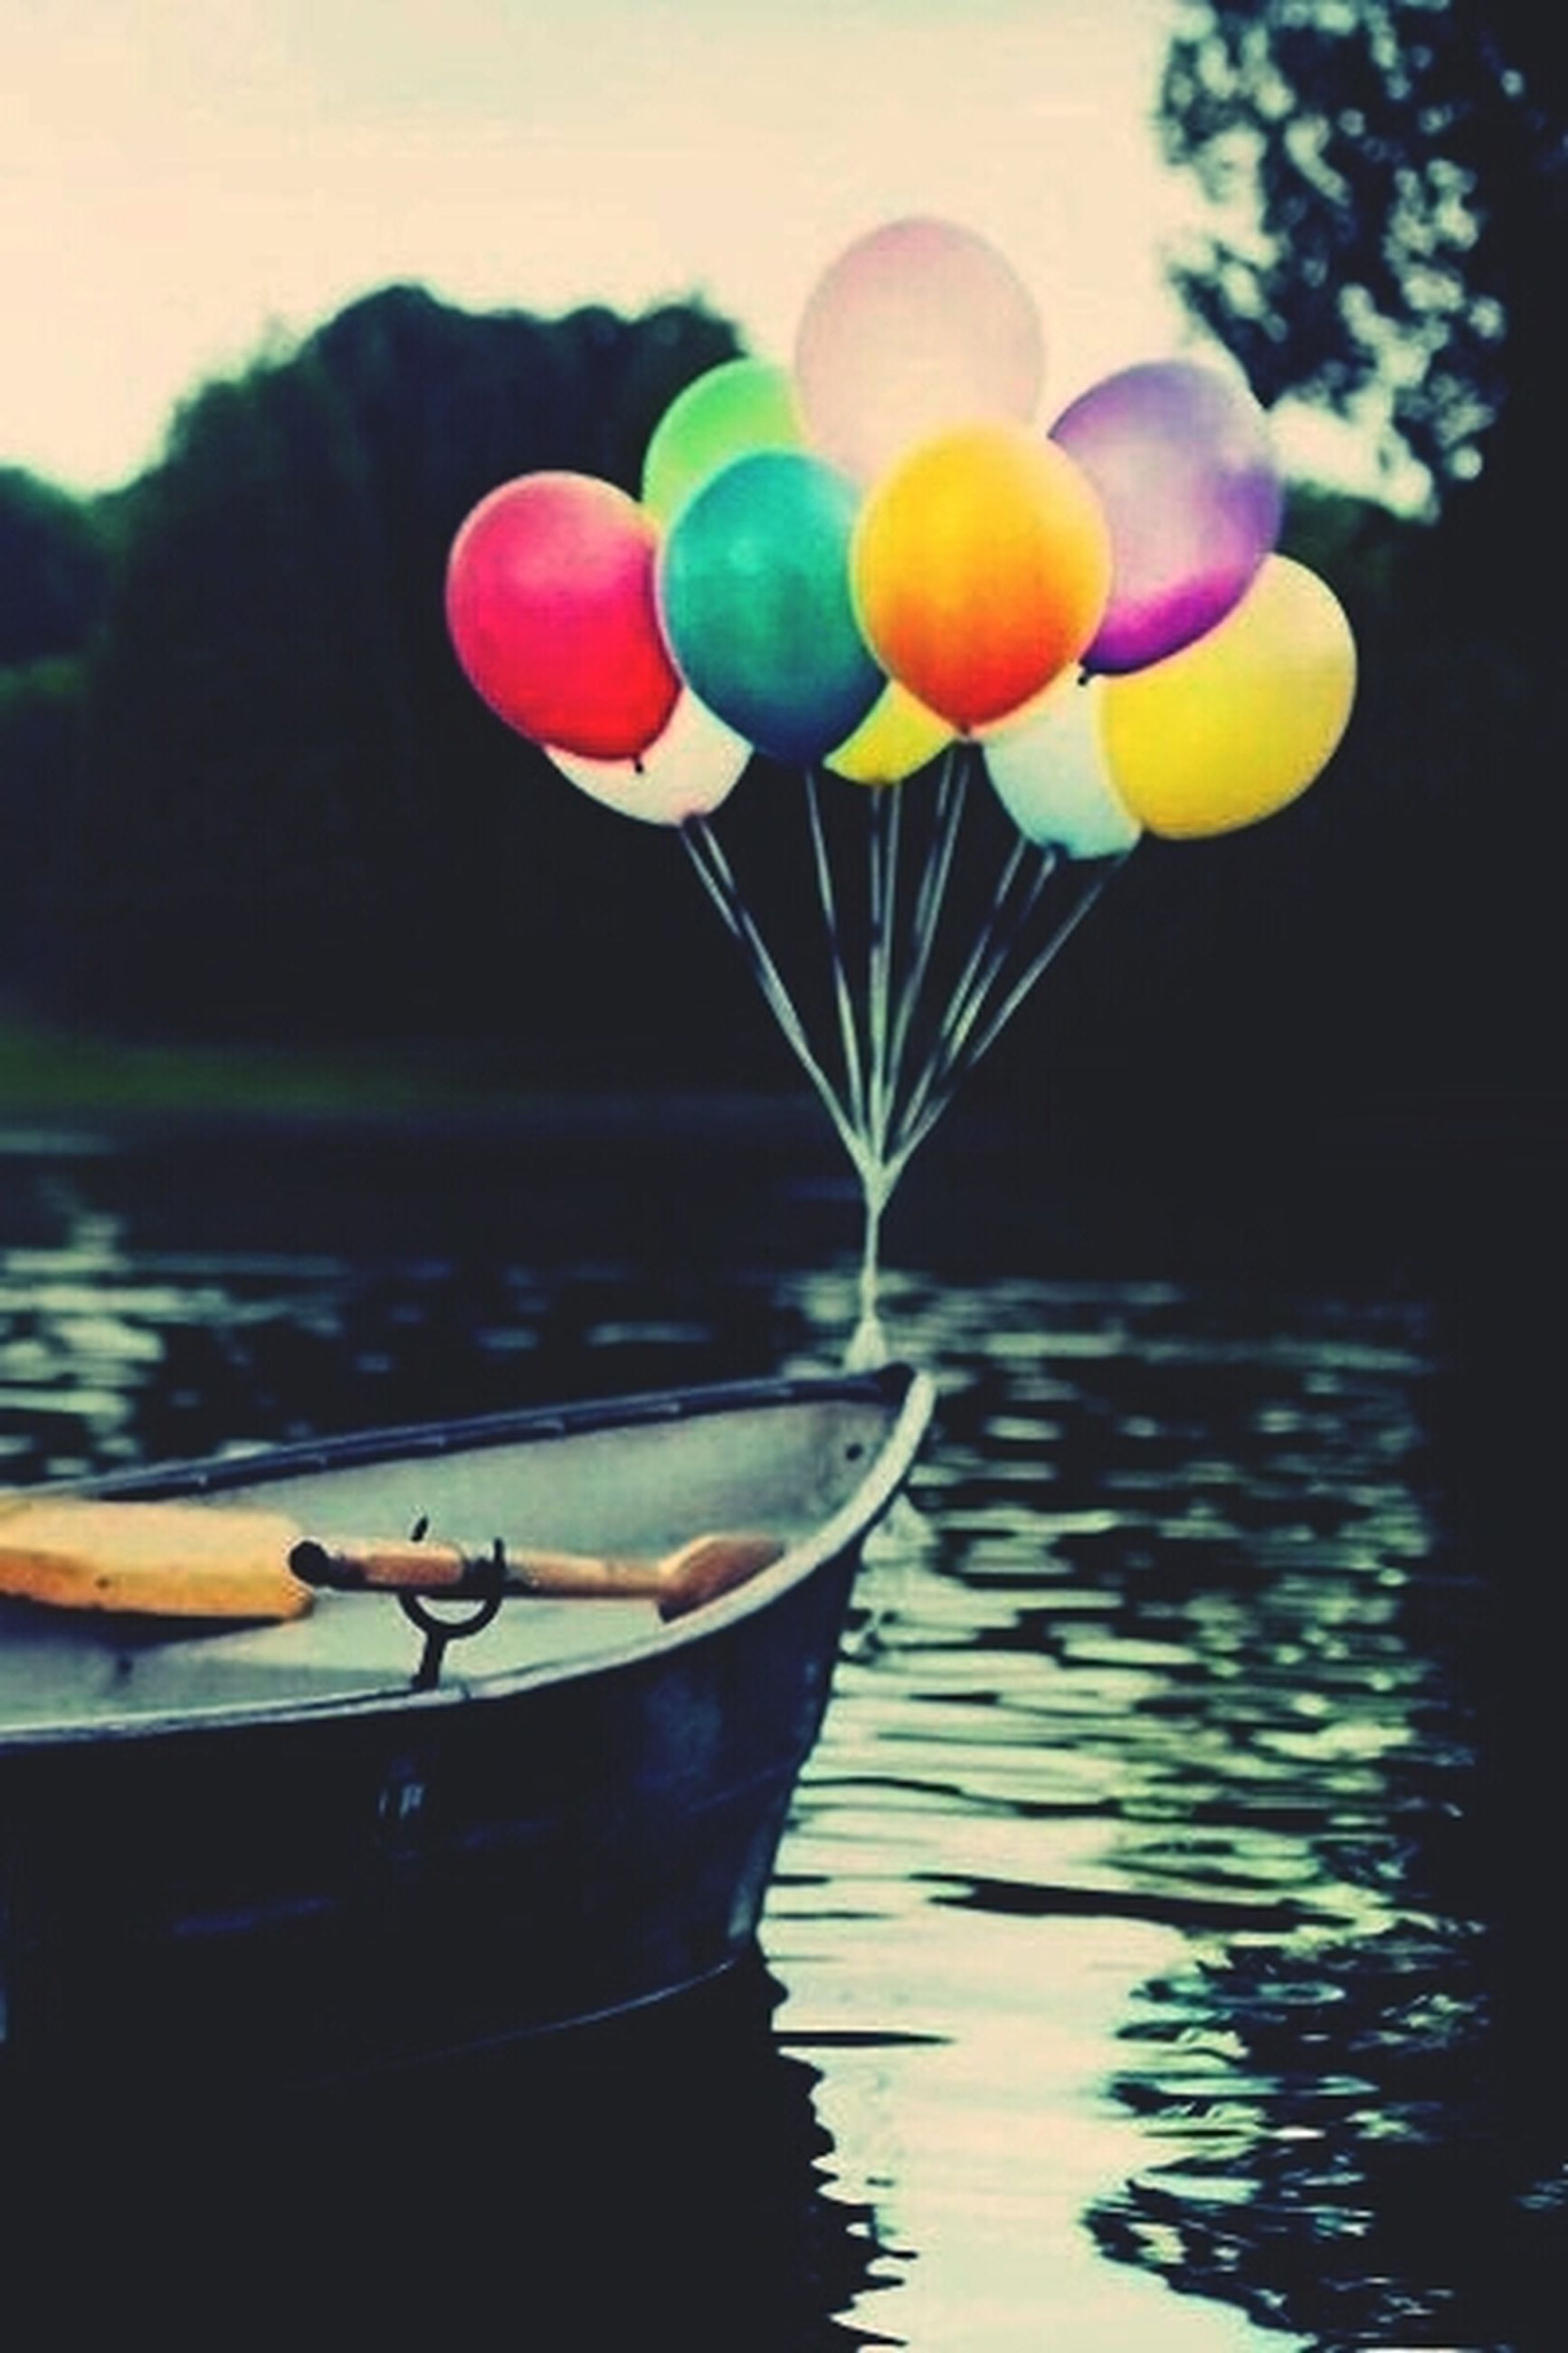 water, multi colored, reflection, colorful, waterfront, lake, focus on foreground, nature, close-up, beauty in nature, boat, no people, floating on water, nautical vessel, day, tranquility, outdoors, balloon, toy, childhood